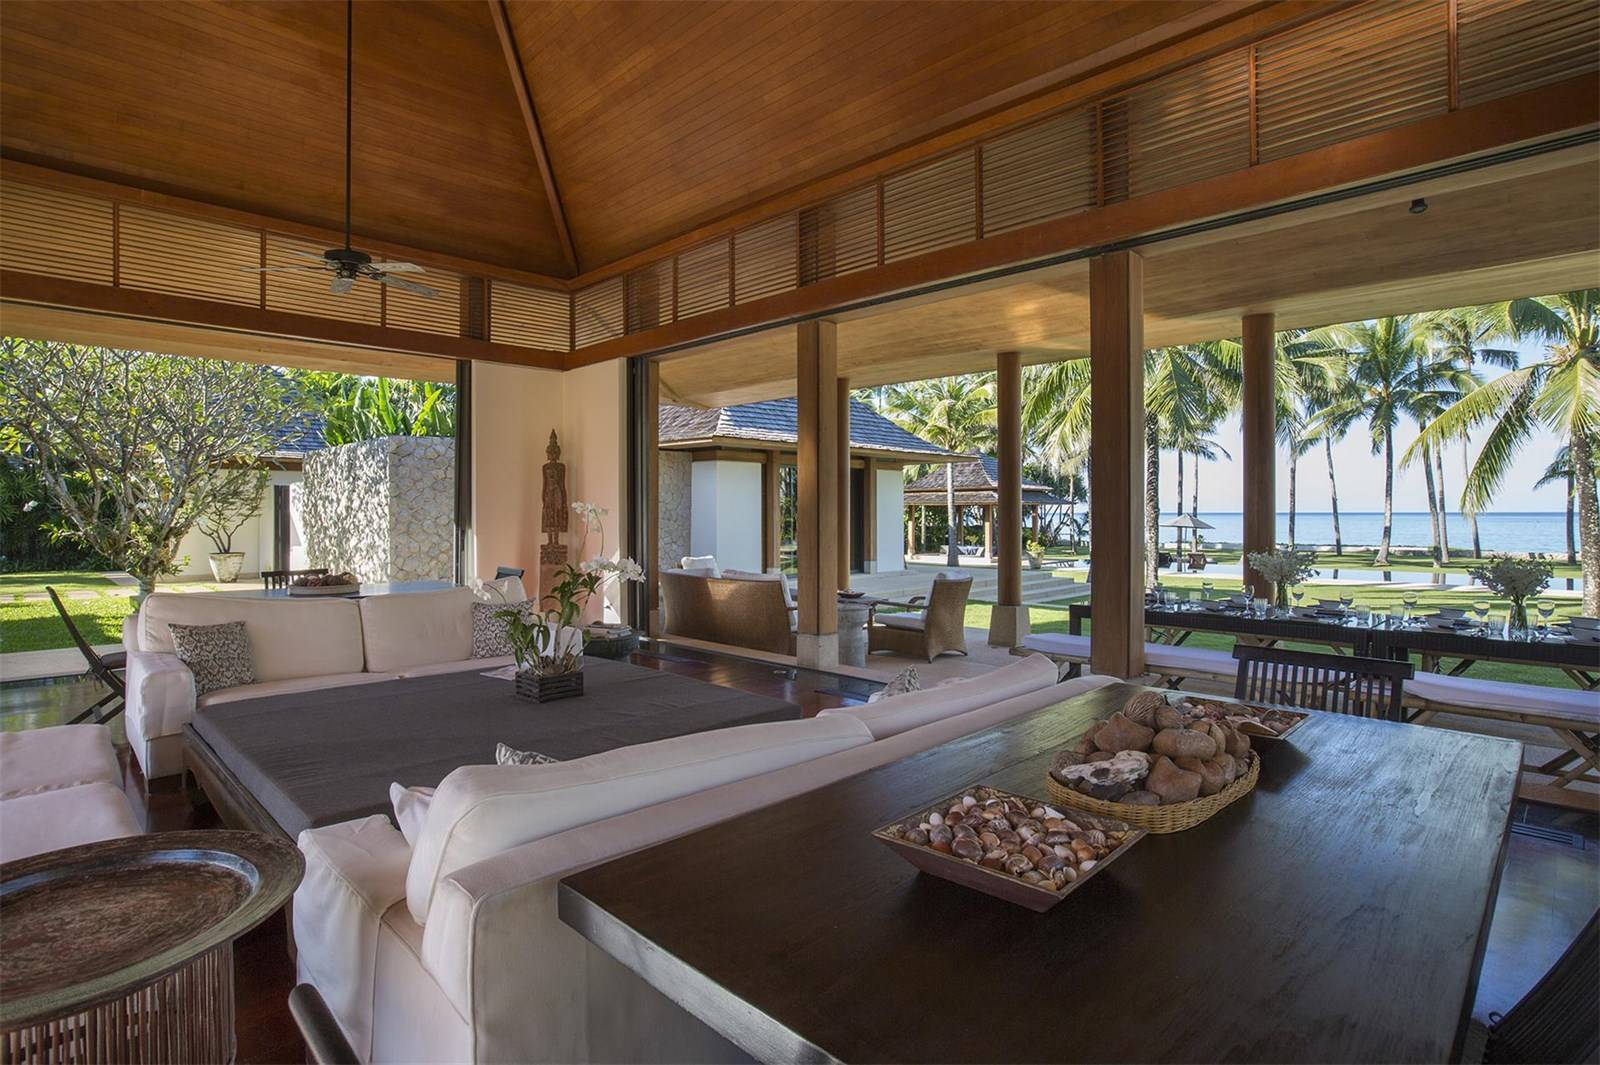 Interiors blend classic Thai accents of teak and bamboo with contemporary flourishes.